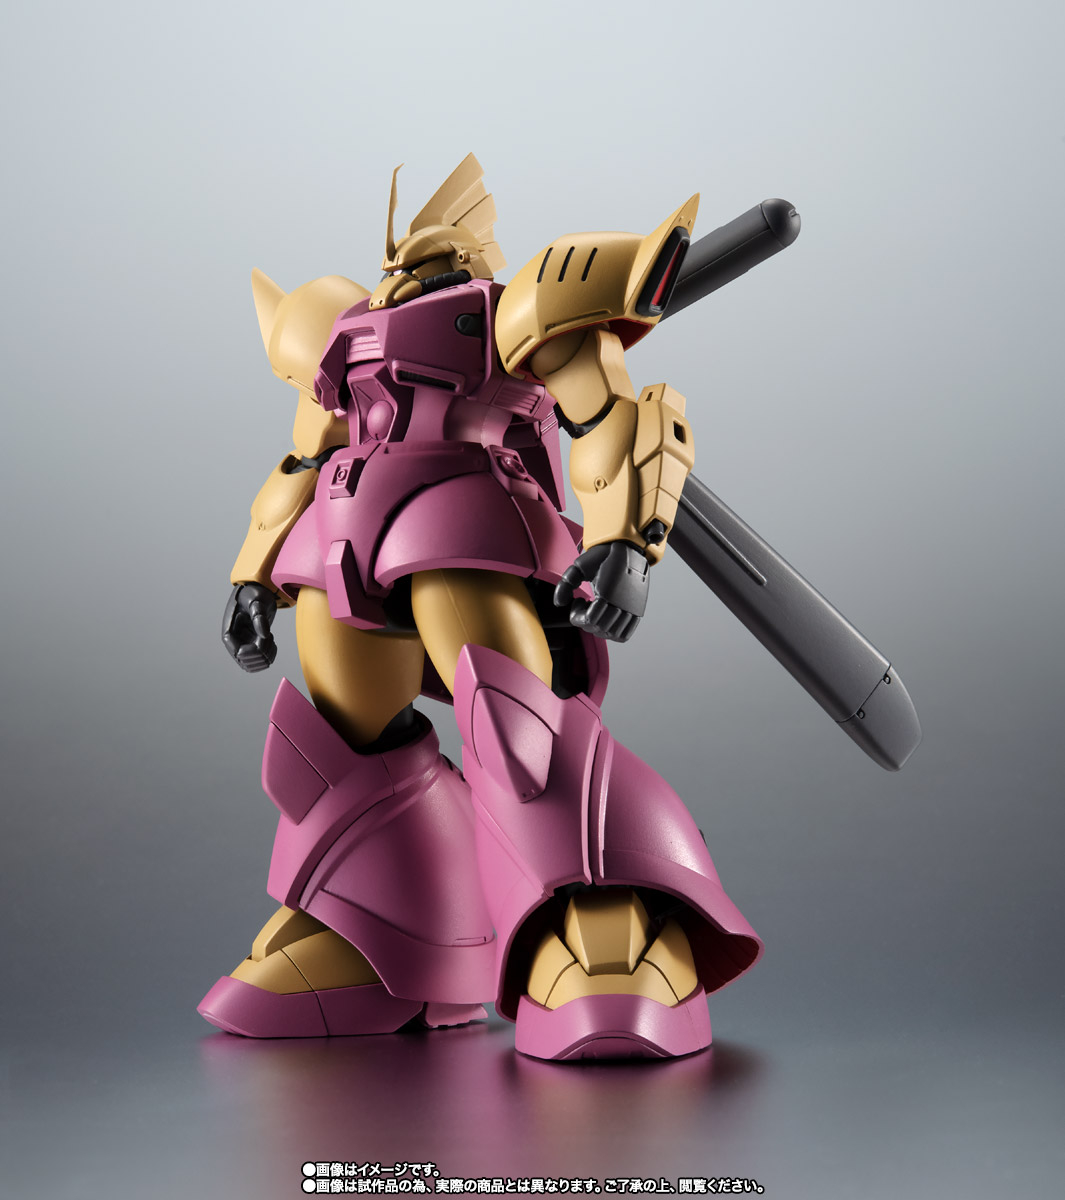 ROBOT魂 ver. A.N.I.M.E. <SIDE MS> MS-14Fs ゲルググM指揮官機(シーマ・ガラハウ機) ver. A.N.I.M.E. 03